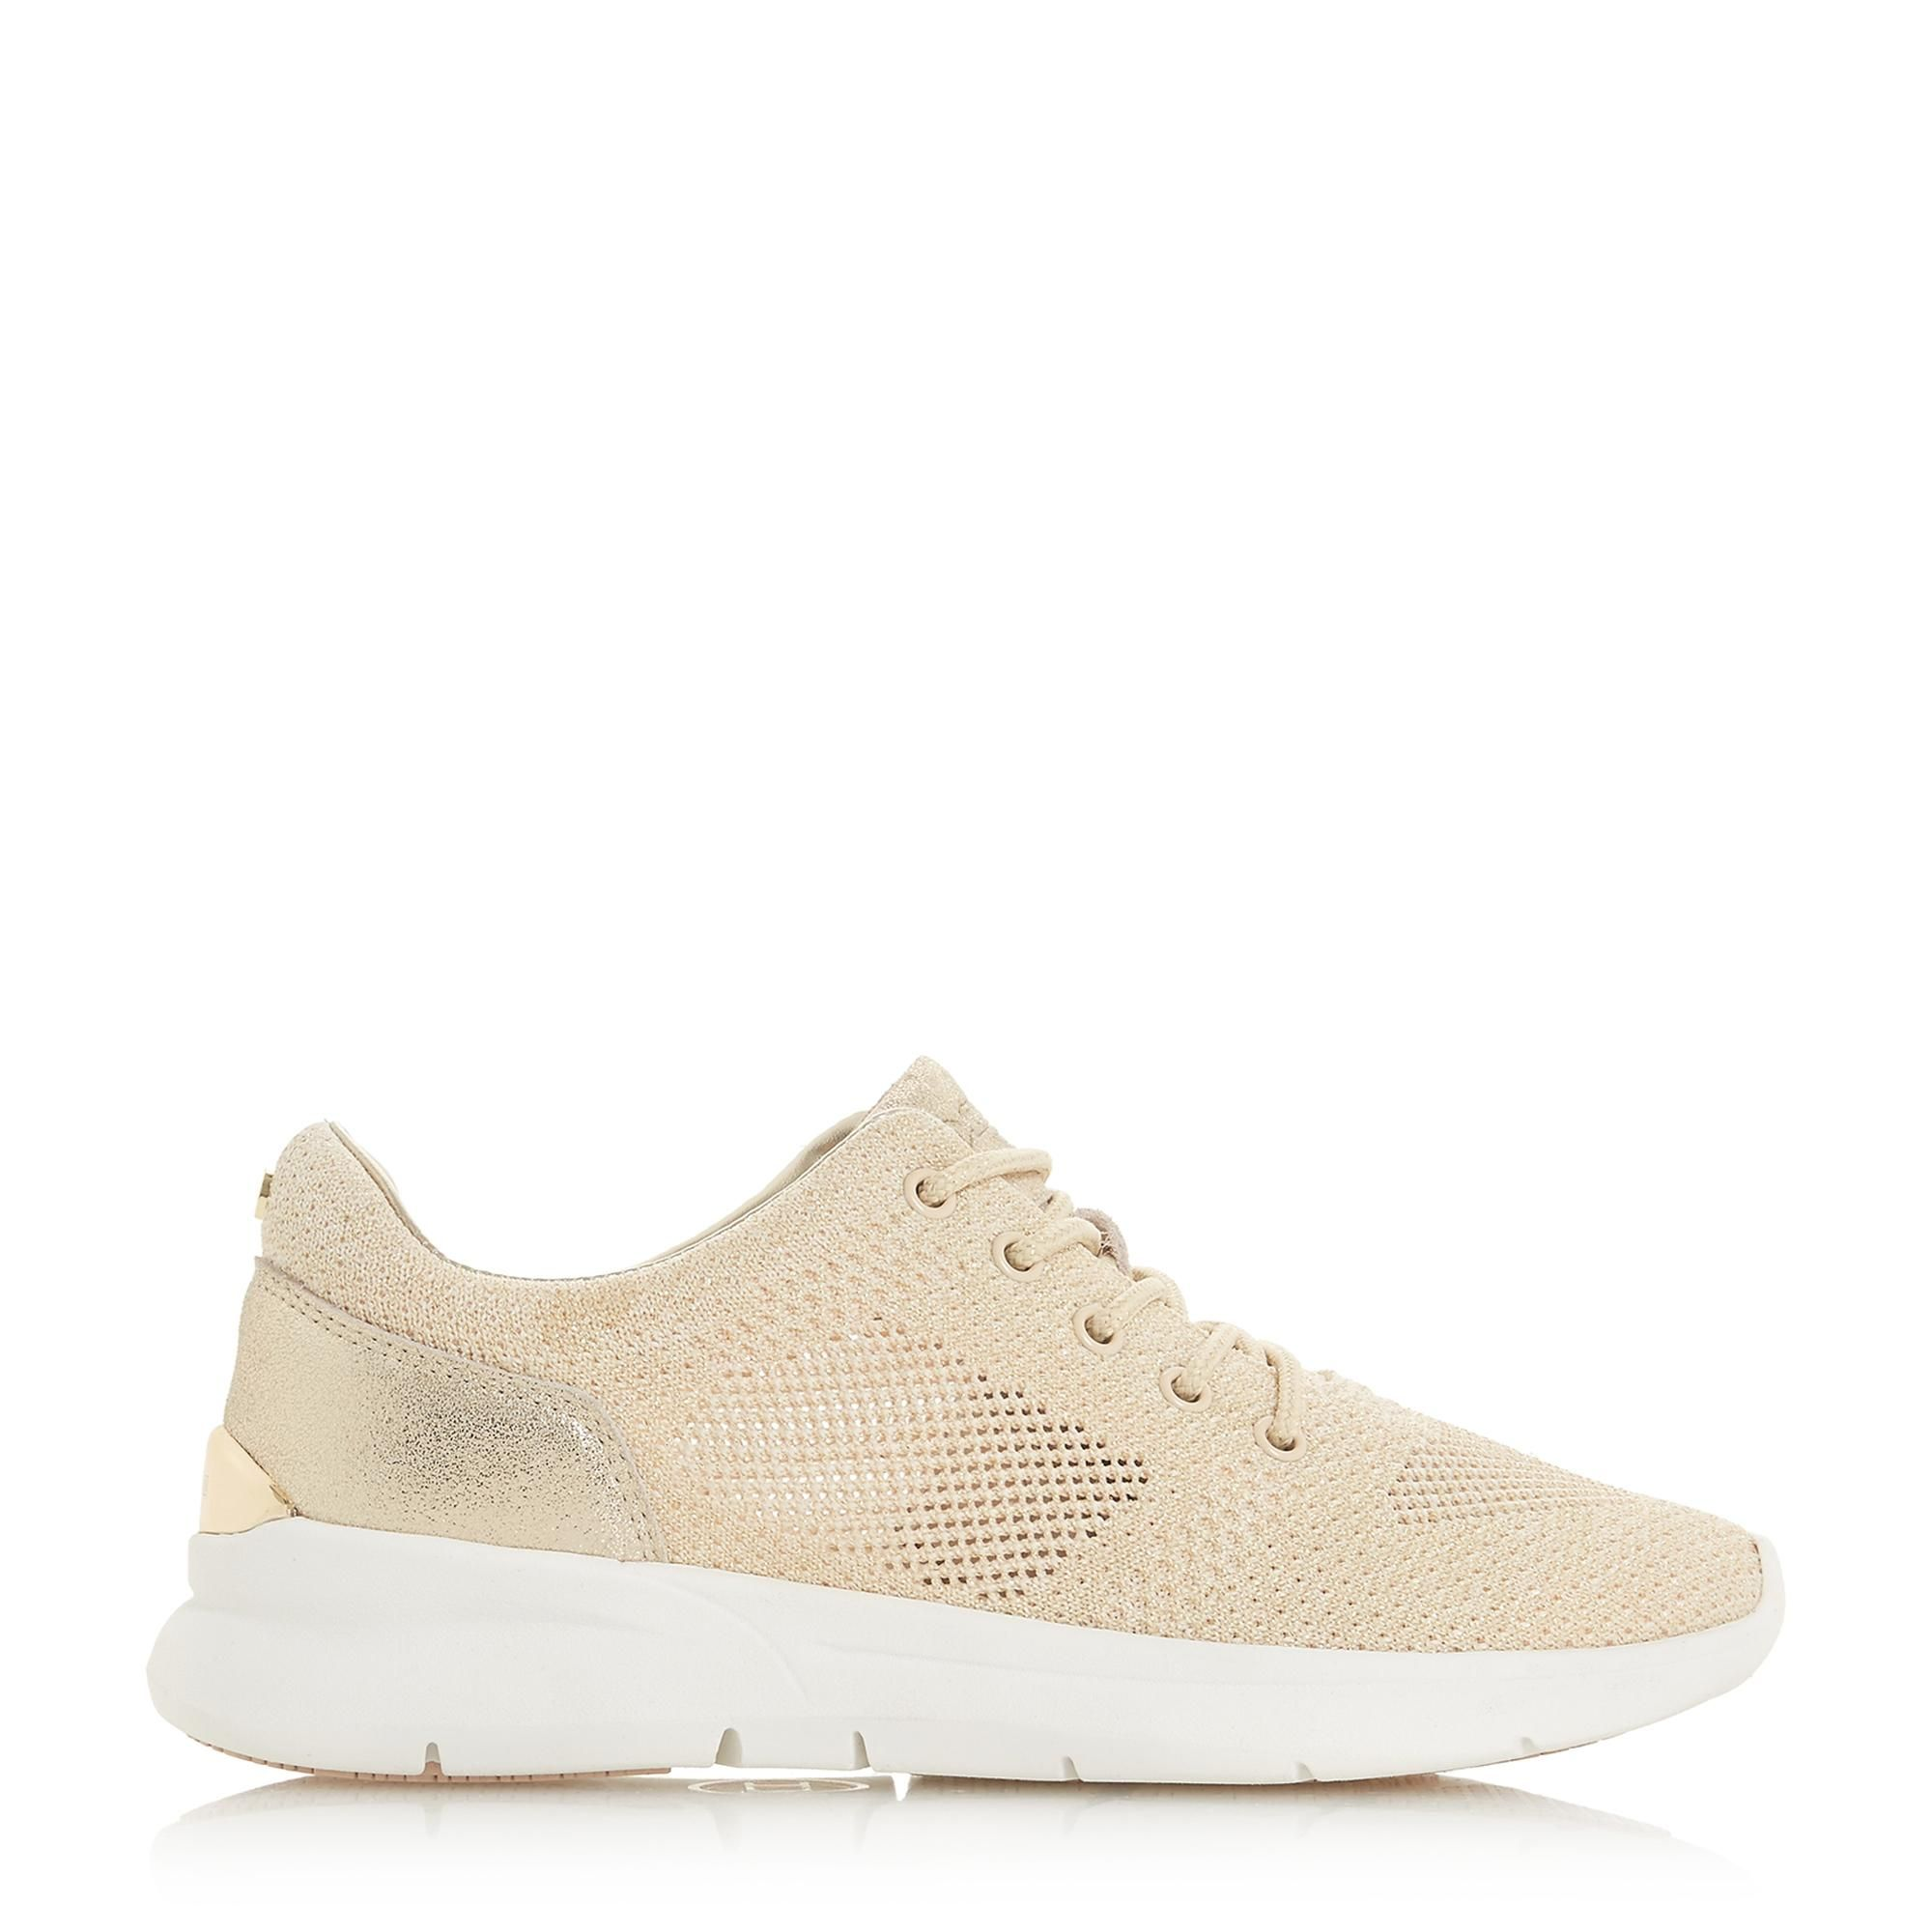 Dune london, Classic lace, Trainers